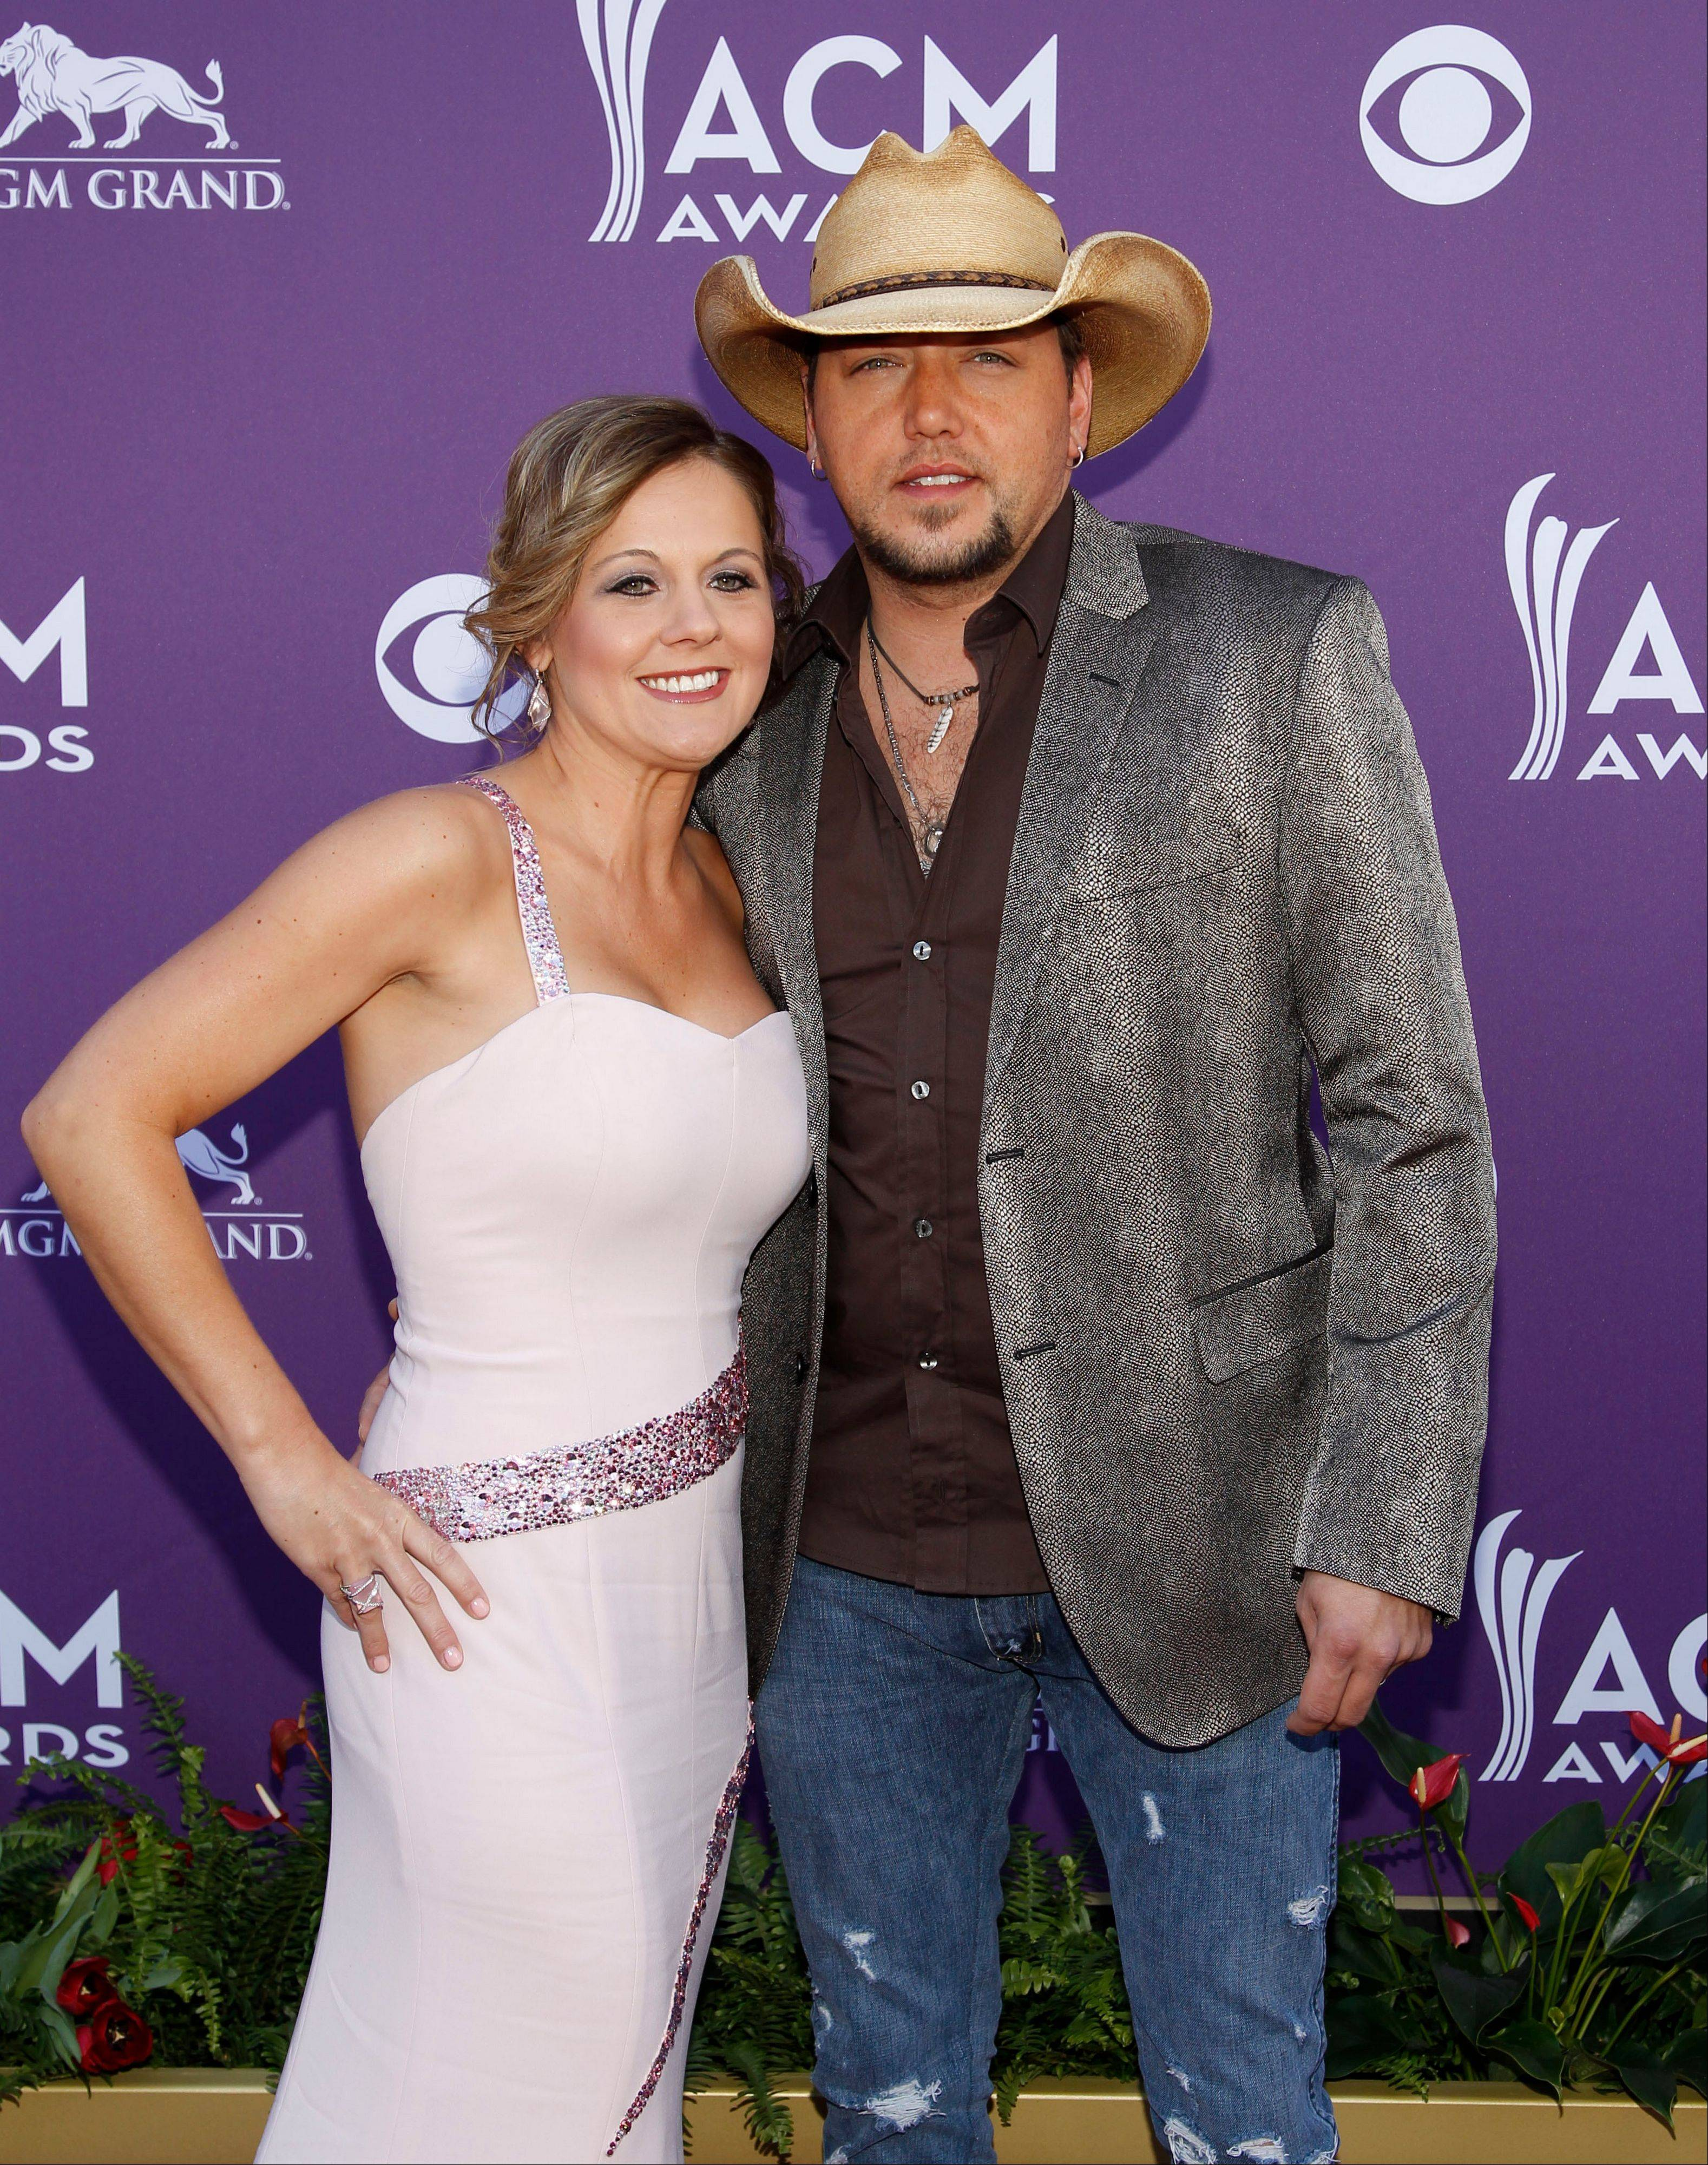 Jason Aldean, nominated for Male Vocalist of the Year as well as Enterainer of the Year escorts his wife, Jessica, into the awards show.